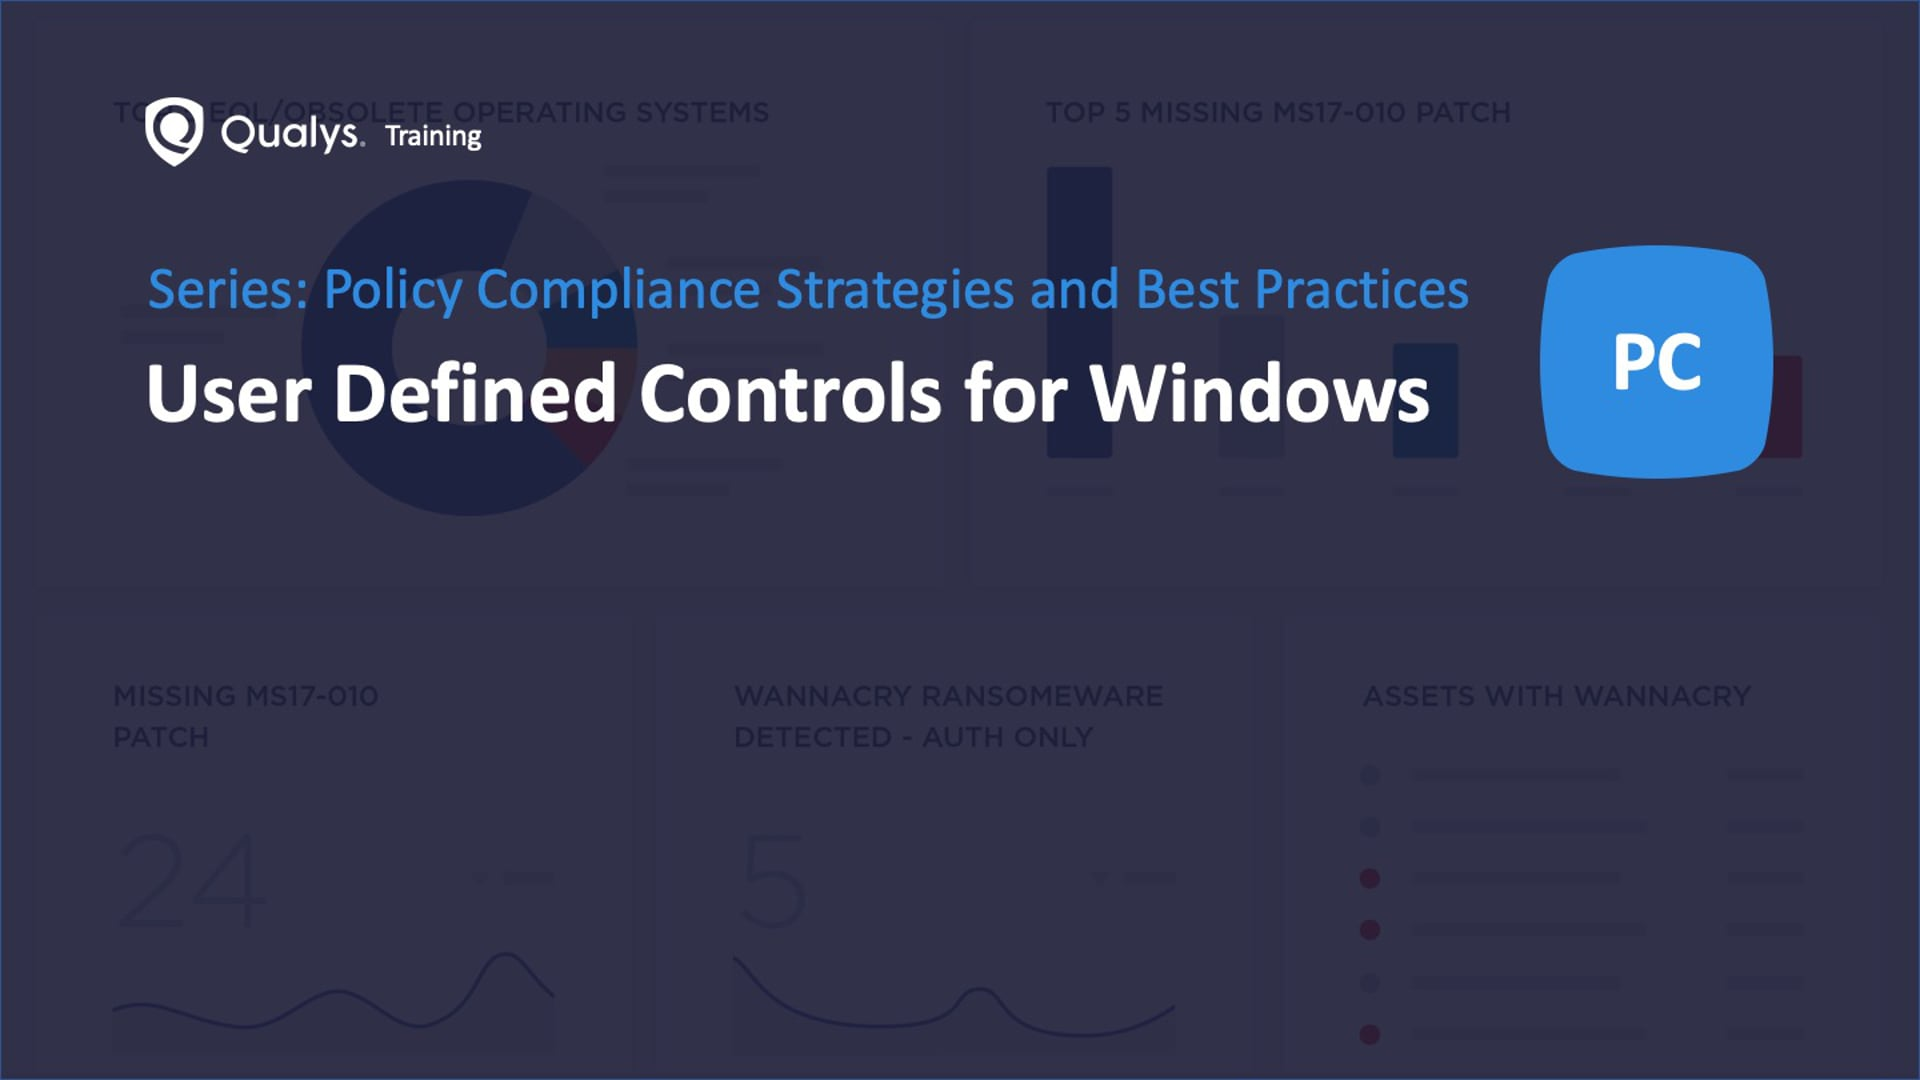 User Defined Controls for Windows